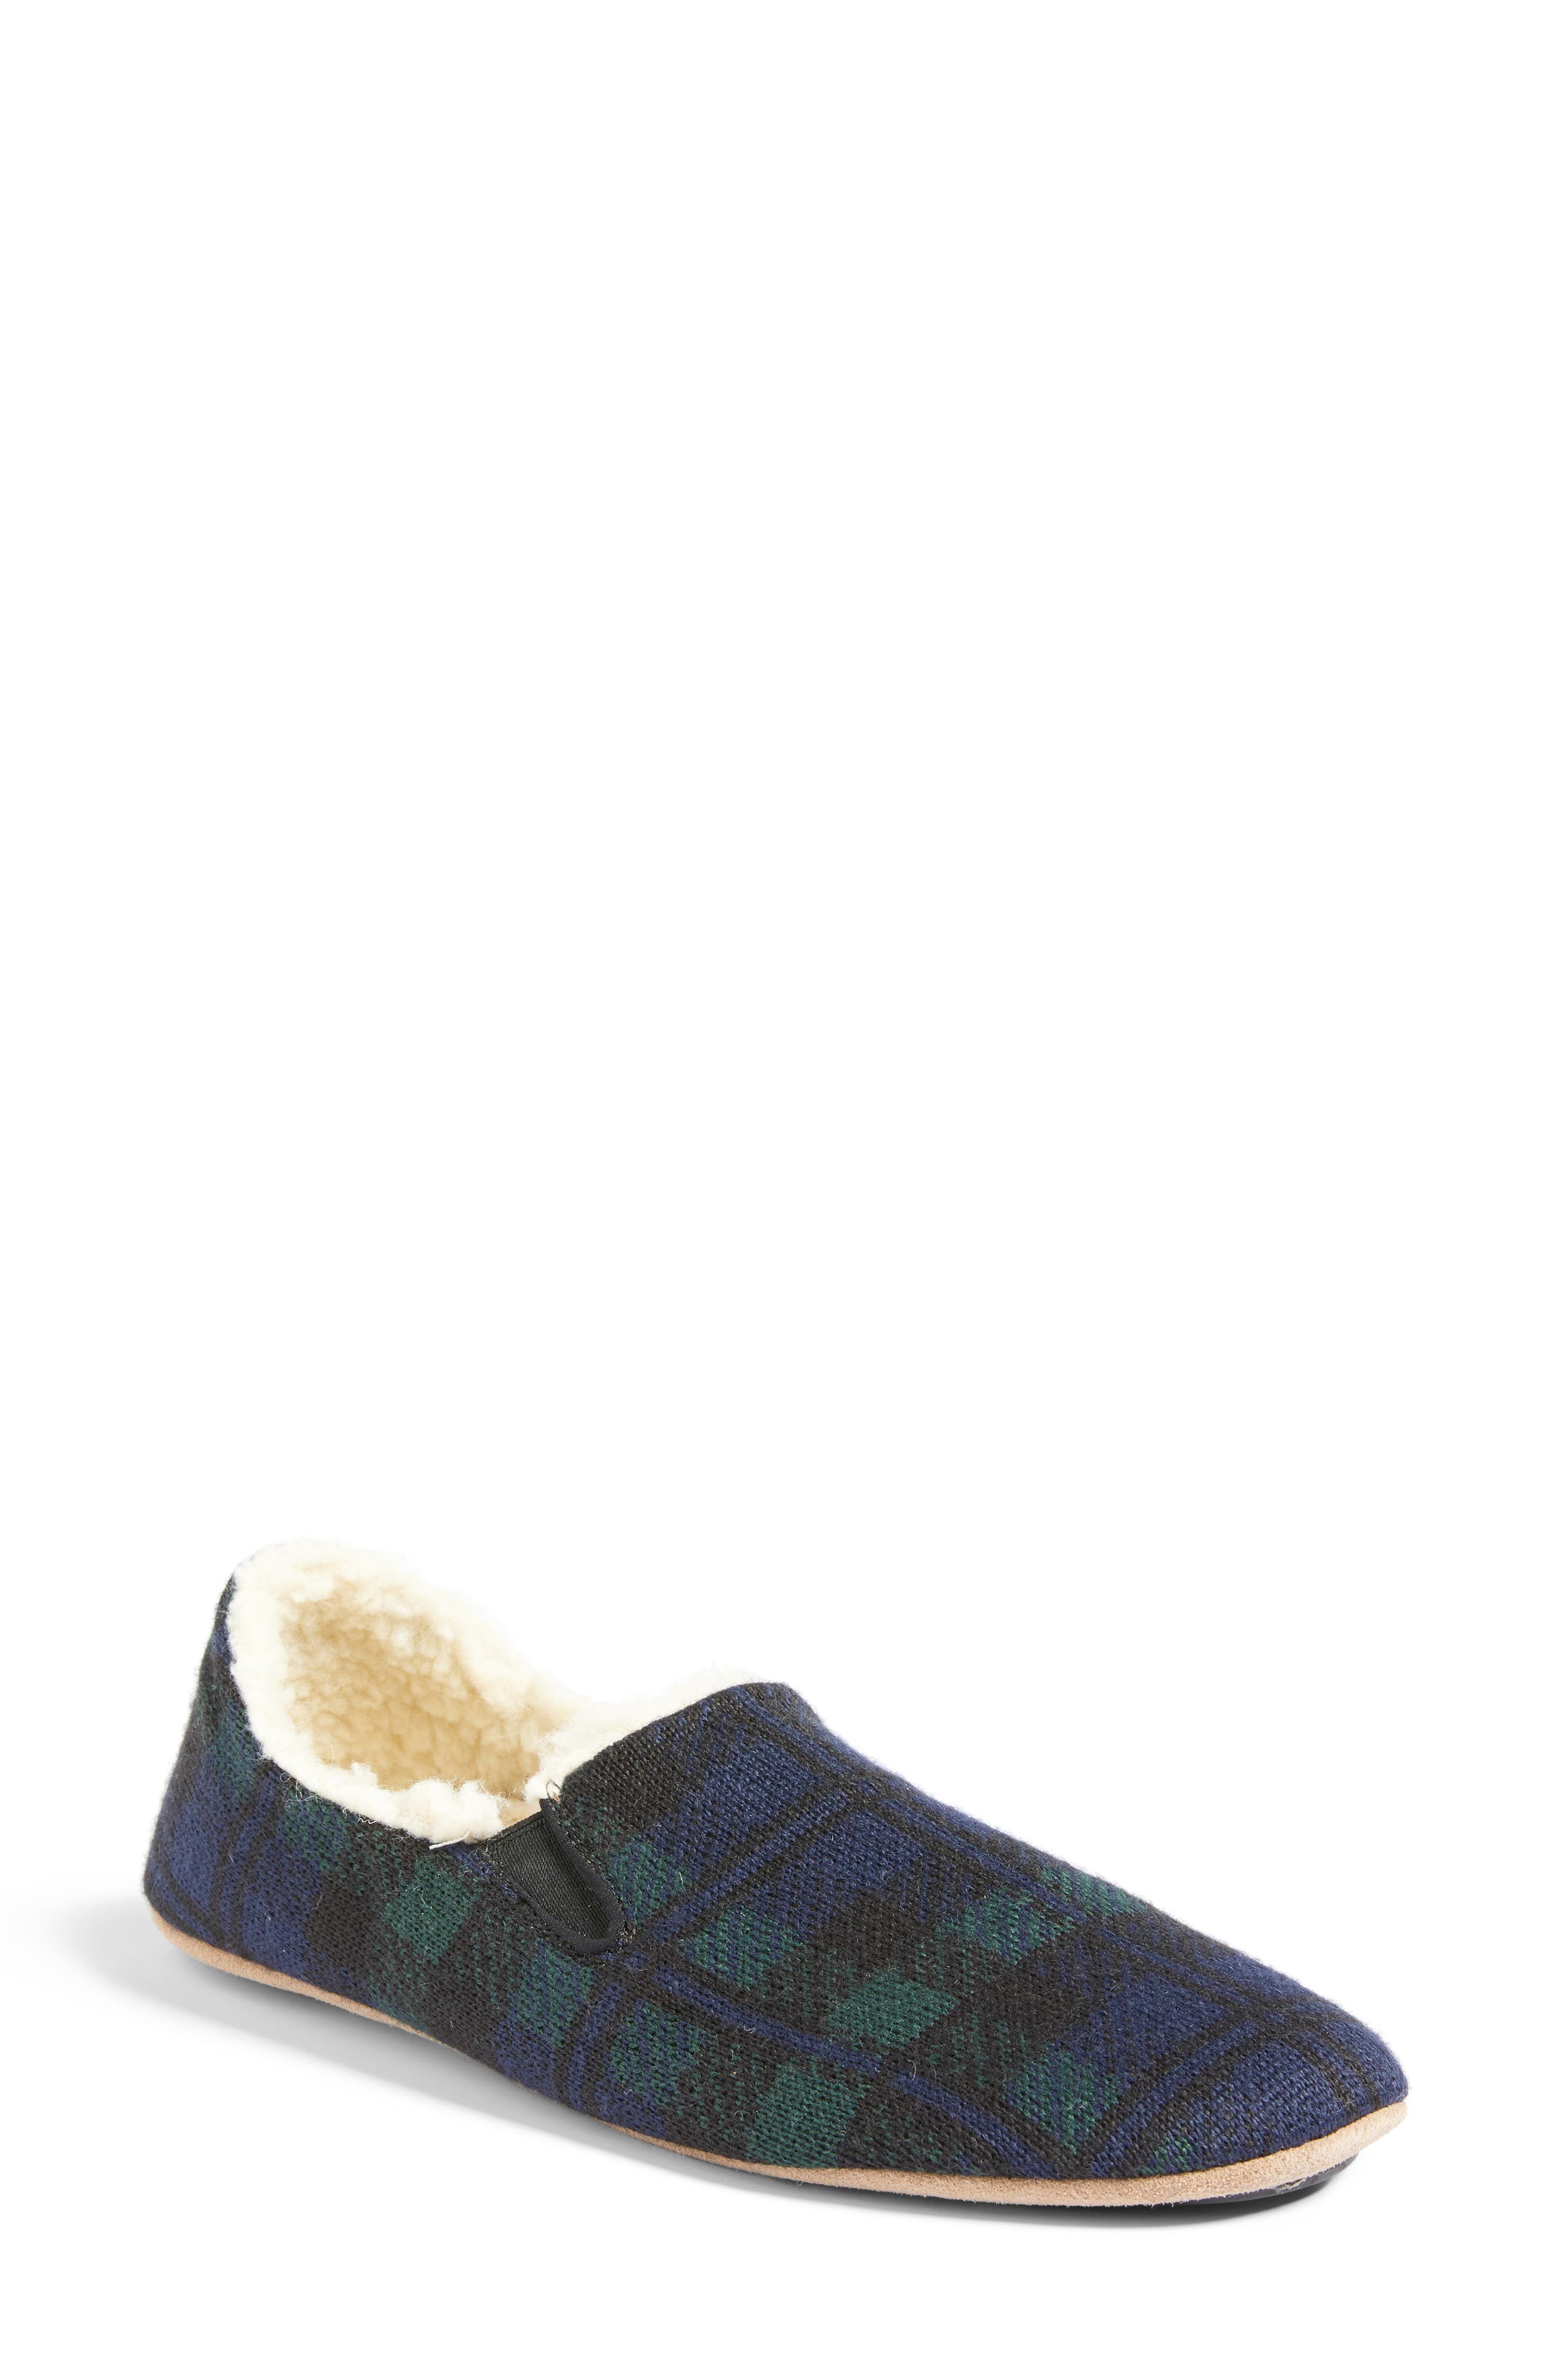 Black Watch Plaid Nomad Slippers,                         Main,                         color,